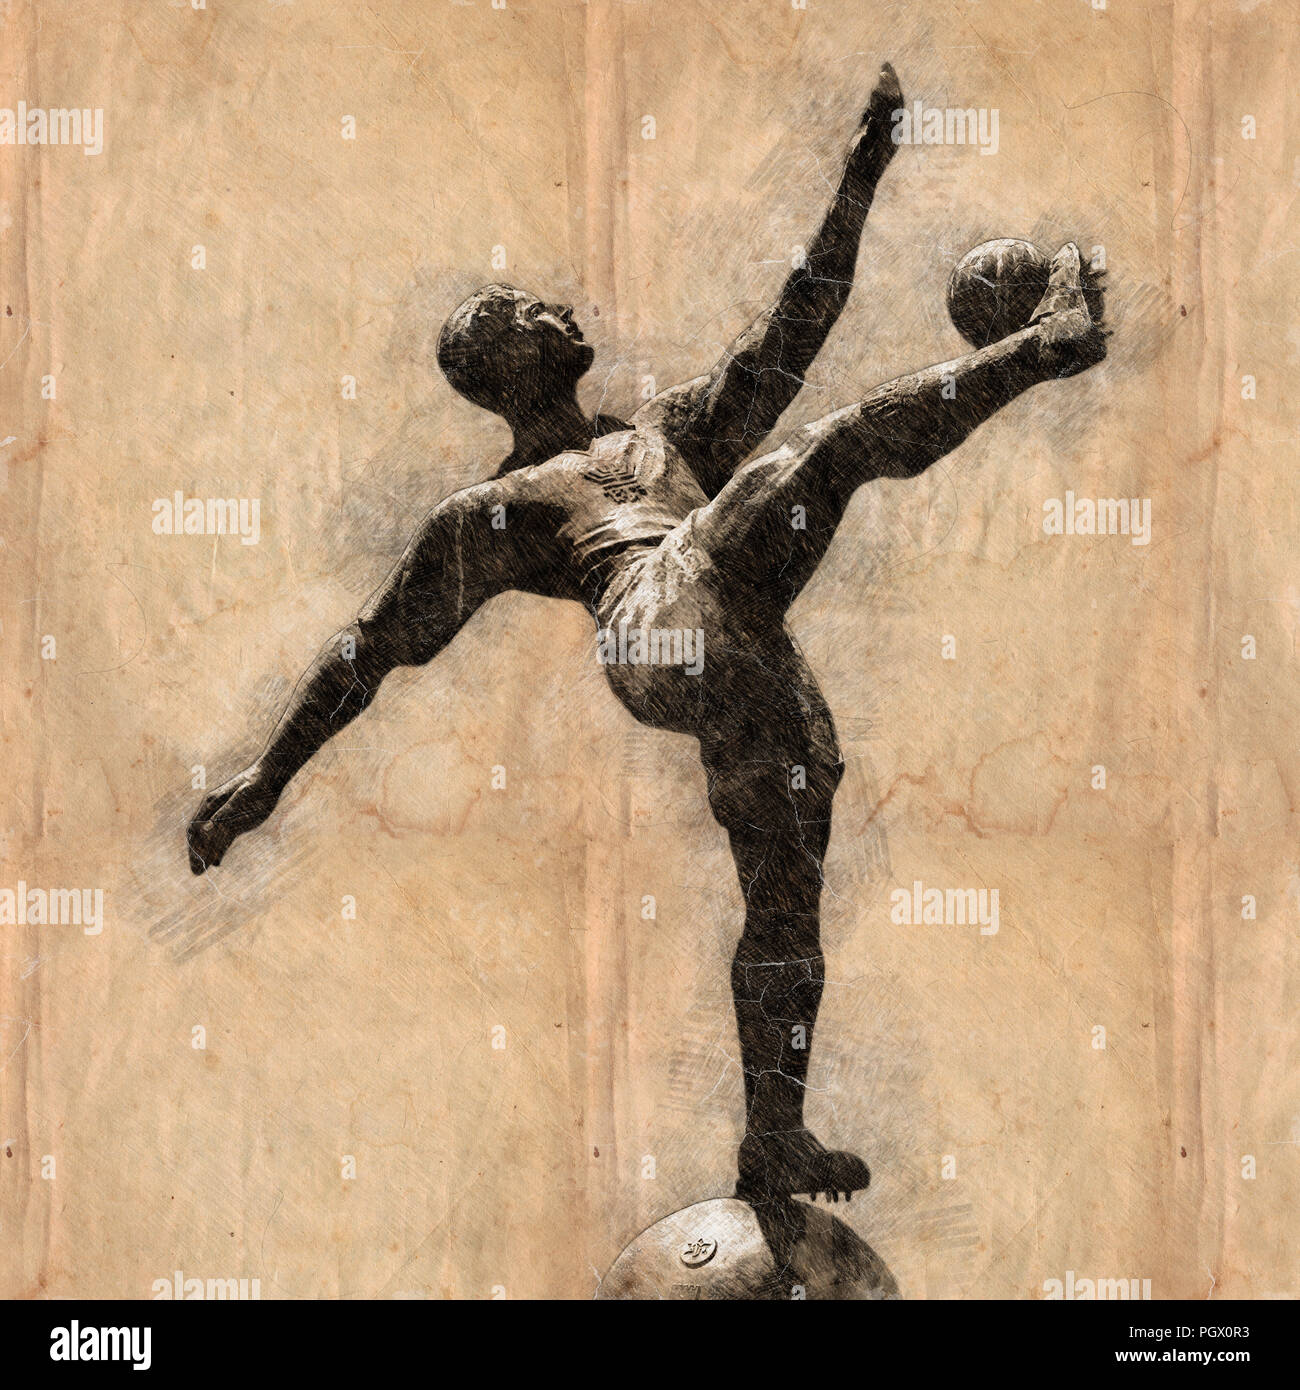 Digitally enhanced image of a statue of a football player in action - Stock Image